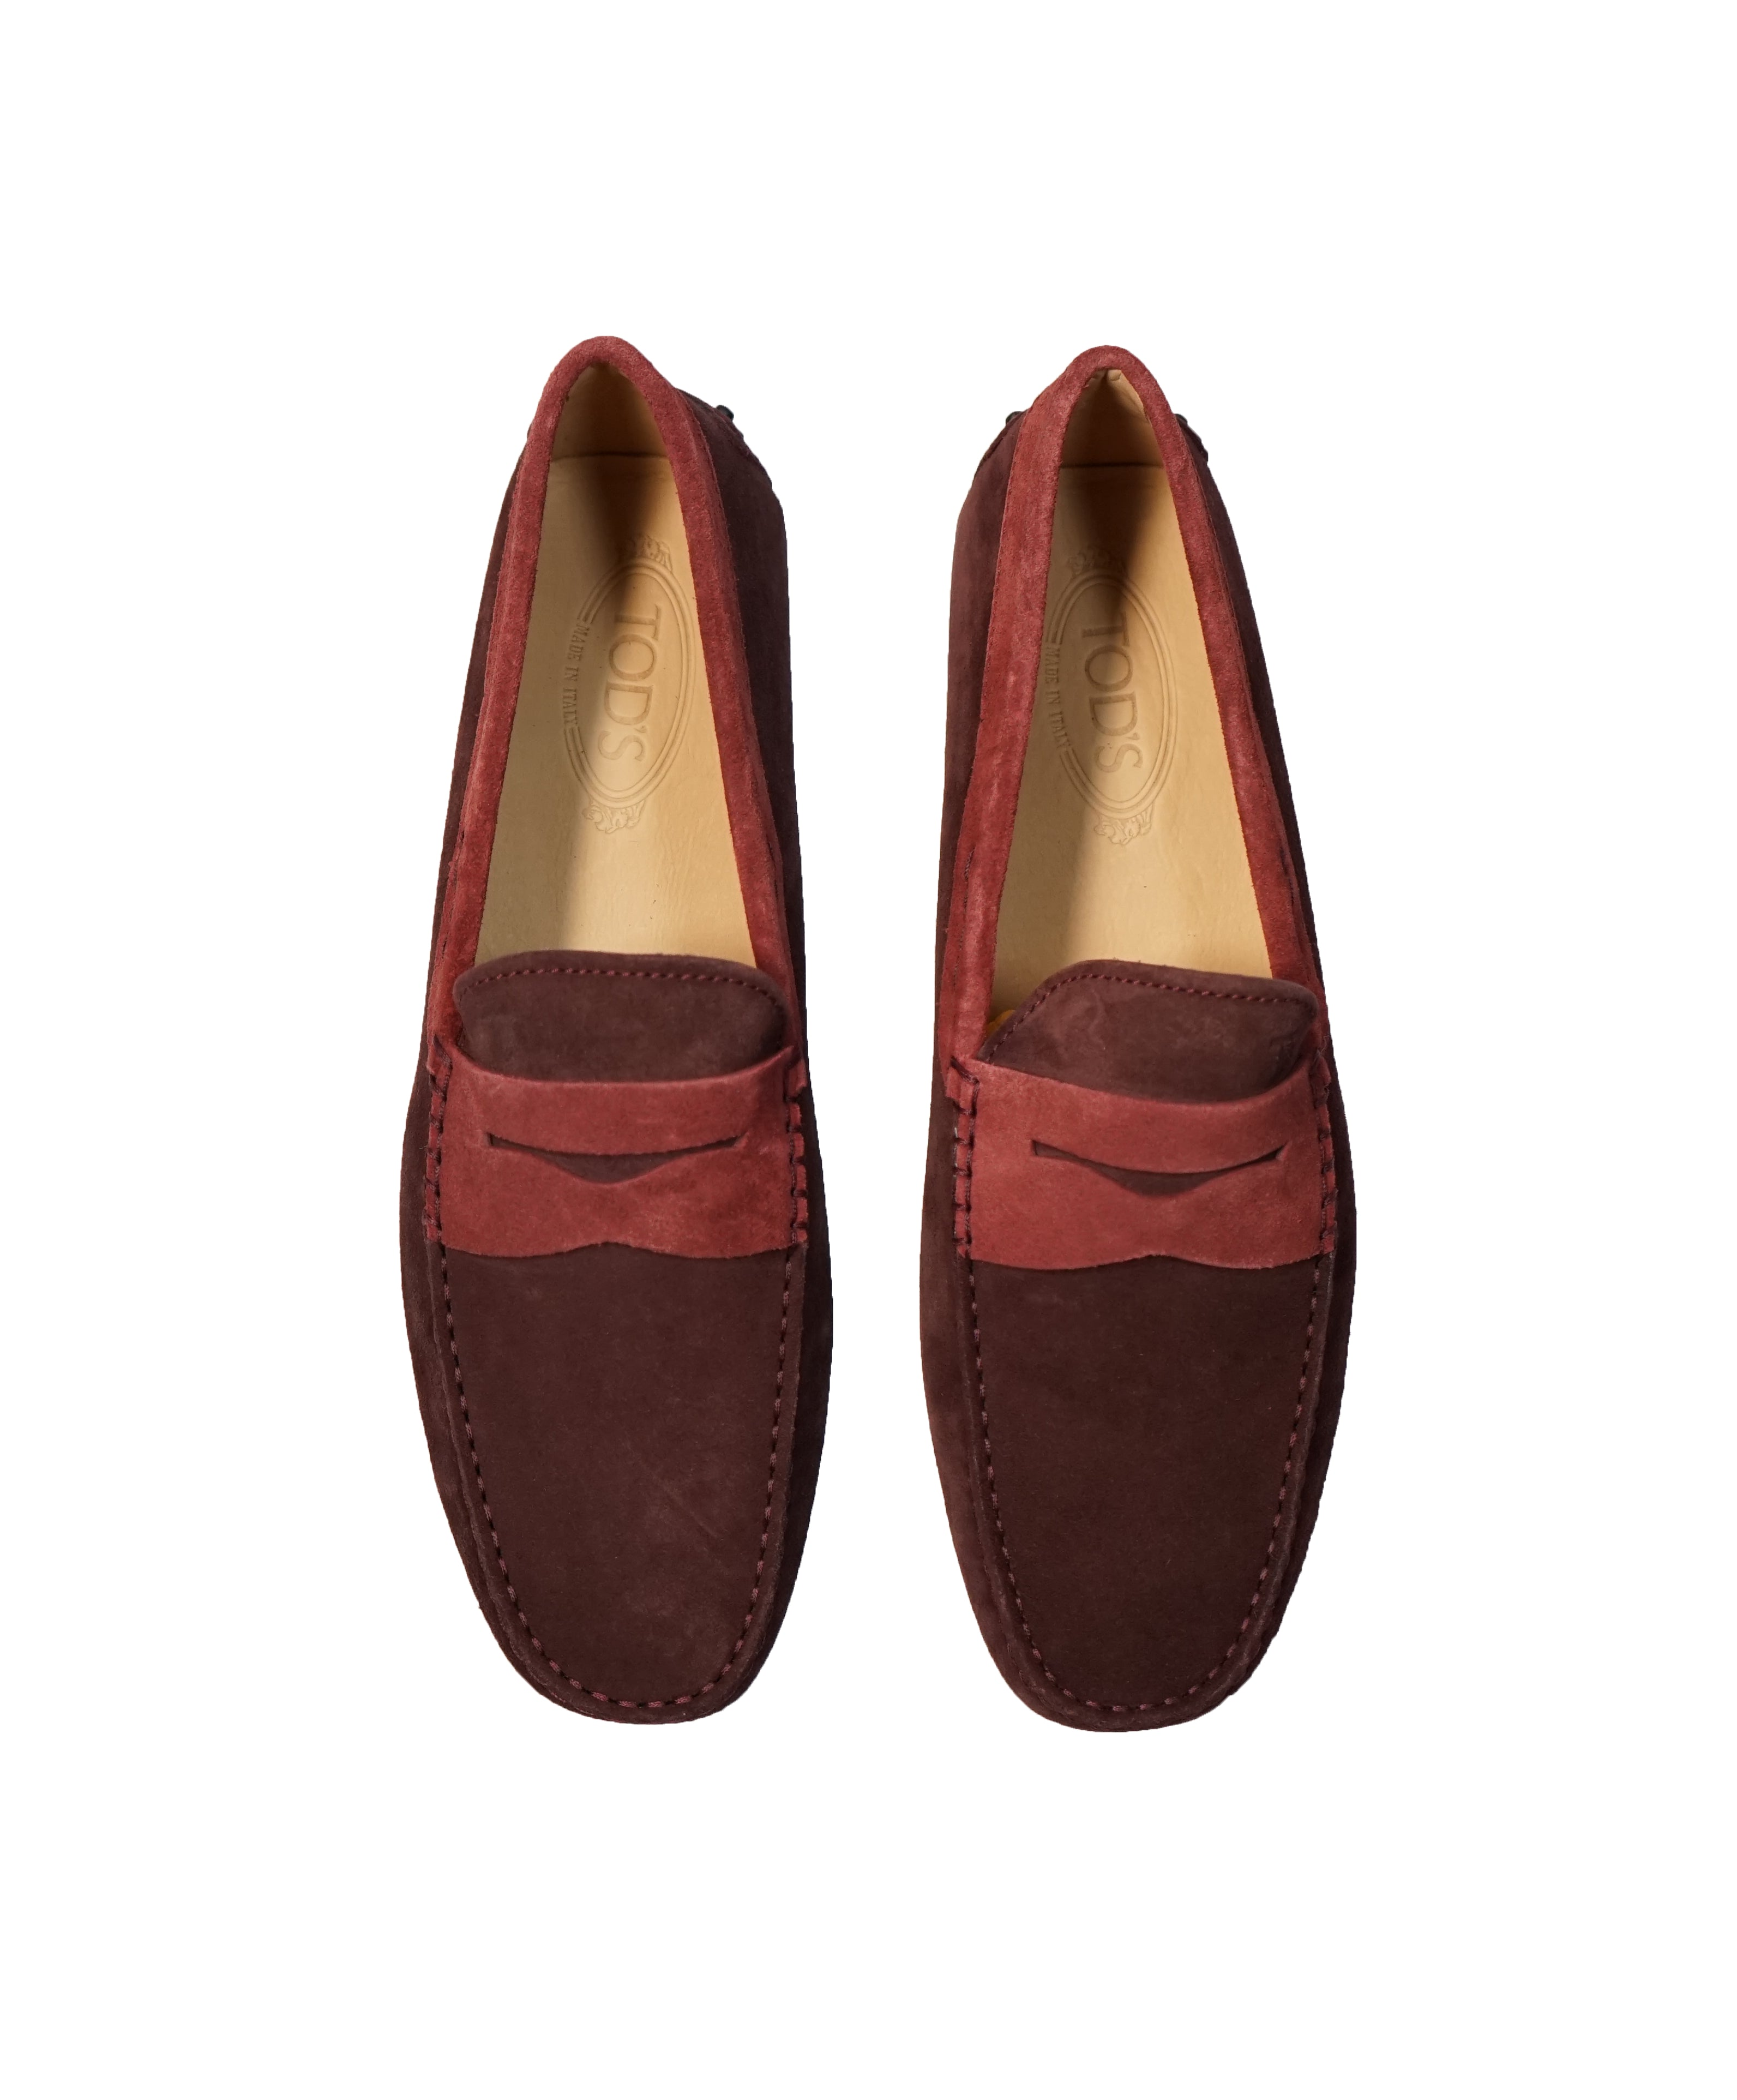 TOD'S - Gommini Laccetto Bi-Color Burgundy Suede Driving Loafers - 10.5